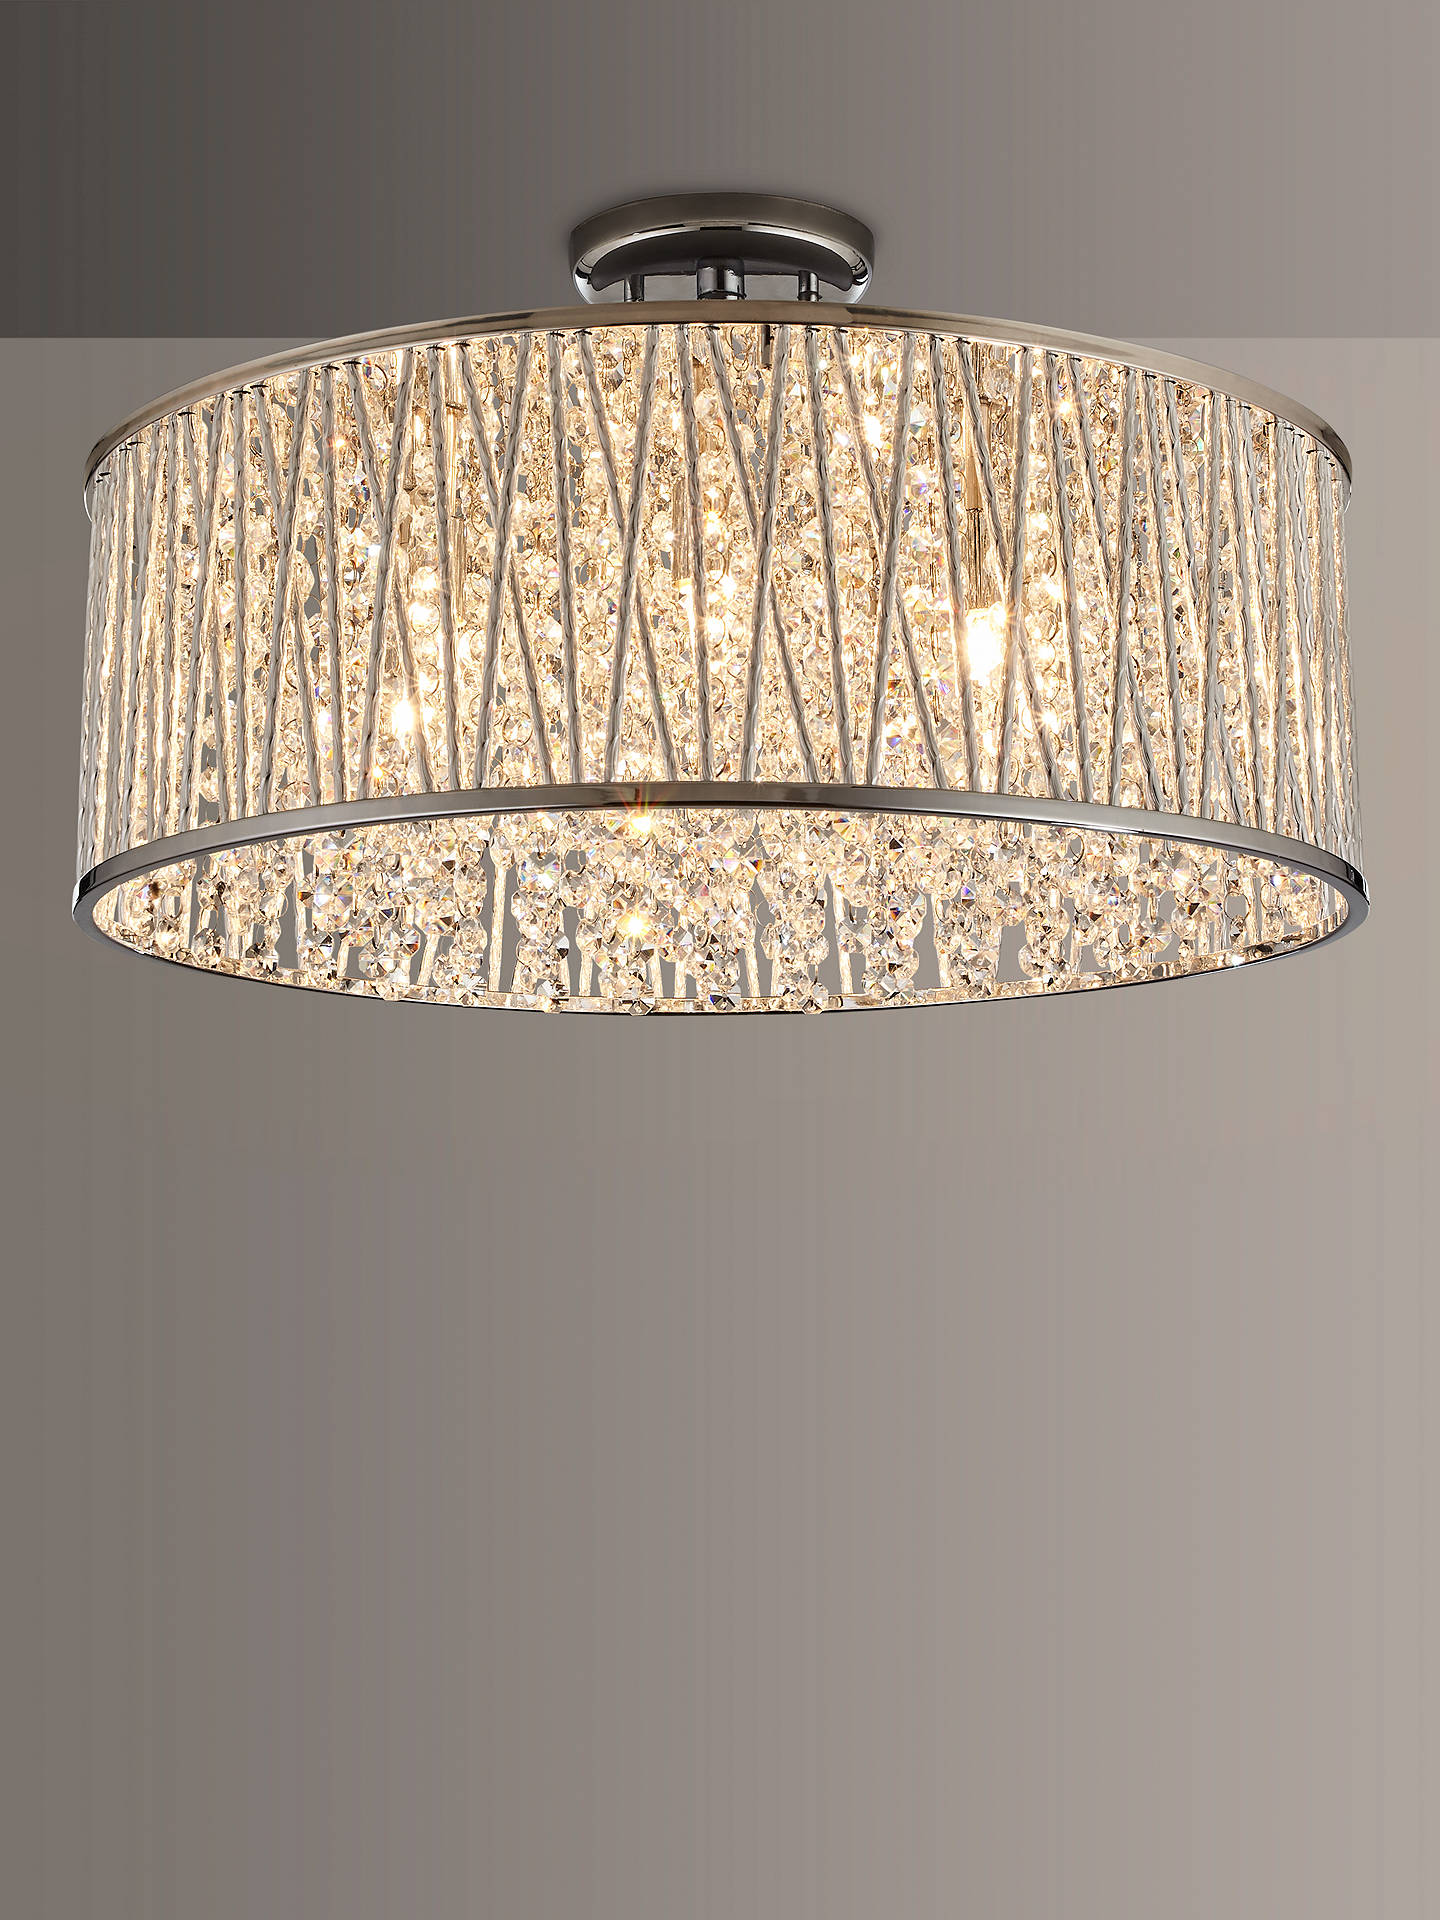 Buy John Lewis & Partners Emilia Large Crystal Drum Flush Ceiling Light Online at johnlewis.com